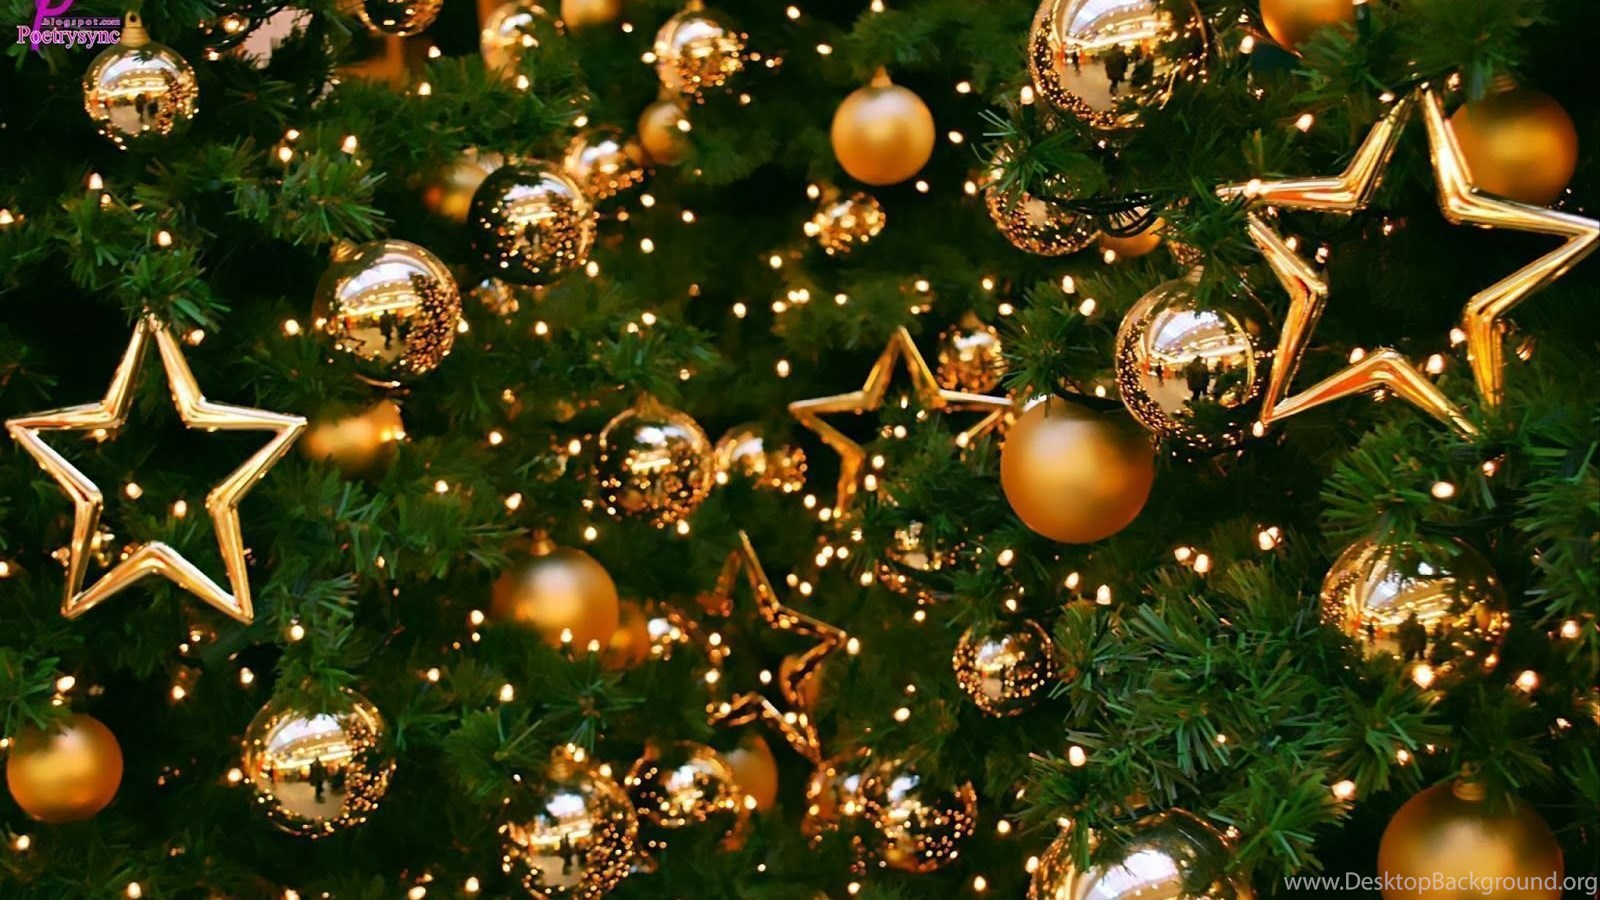 27662 merry christmas balls and christmas tree hd wallpaper image hd